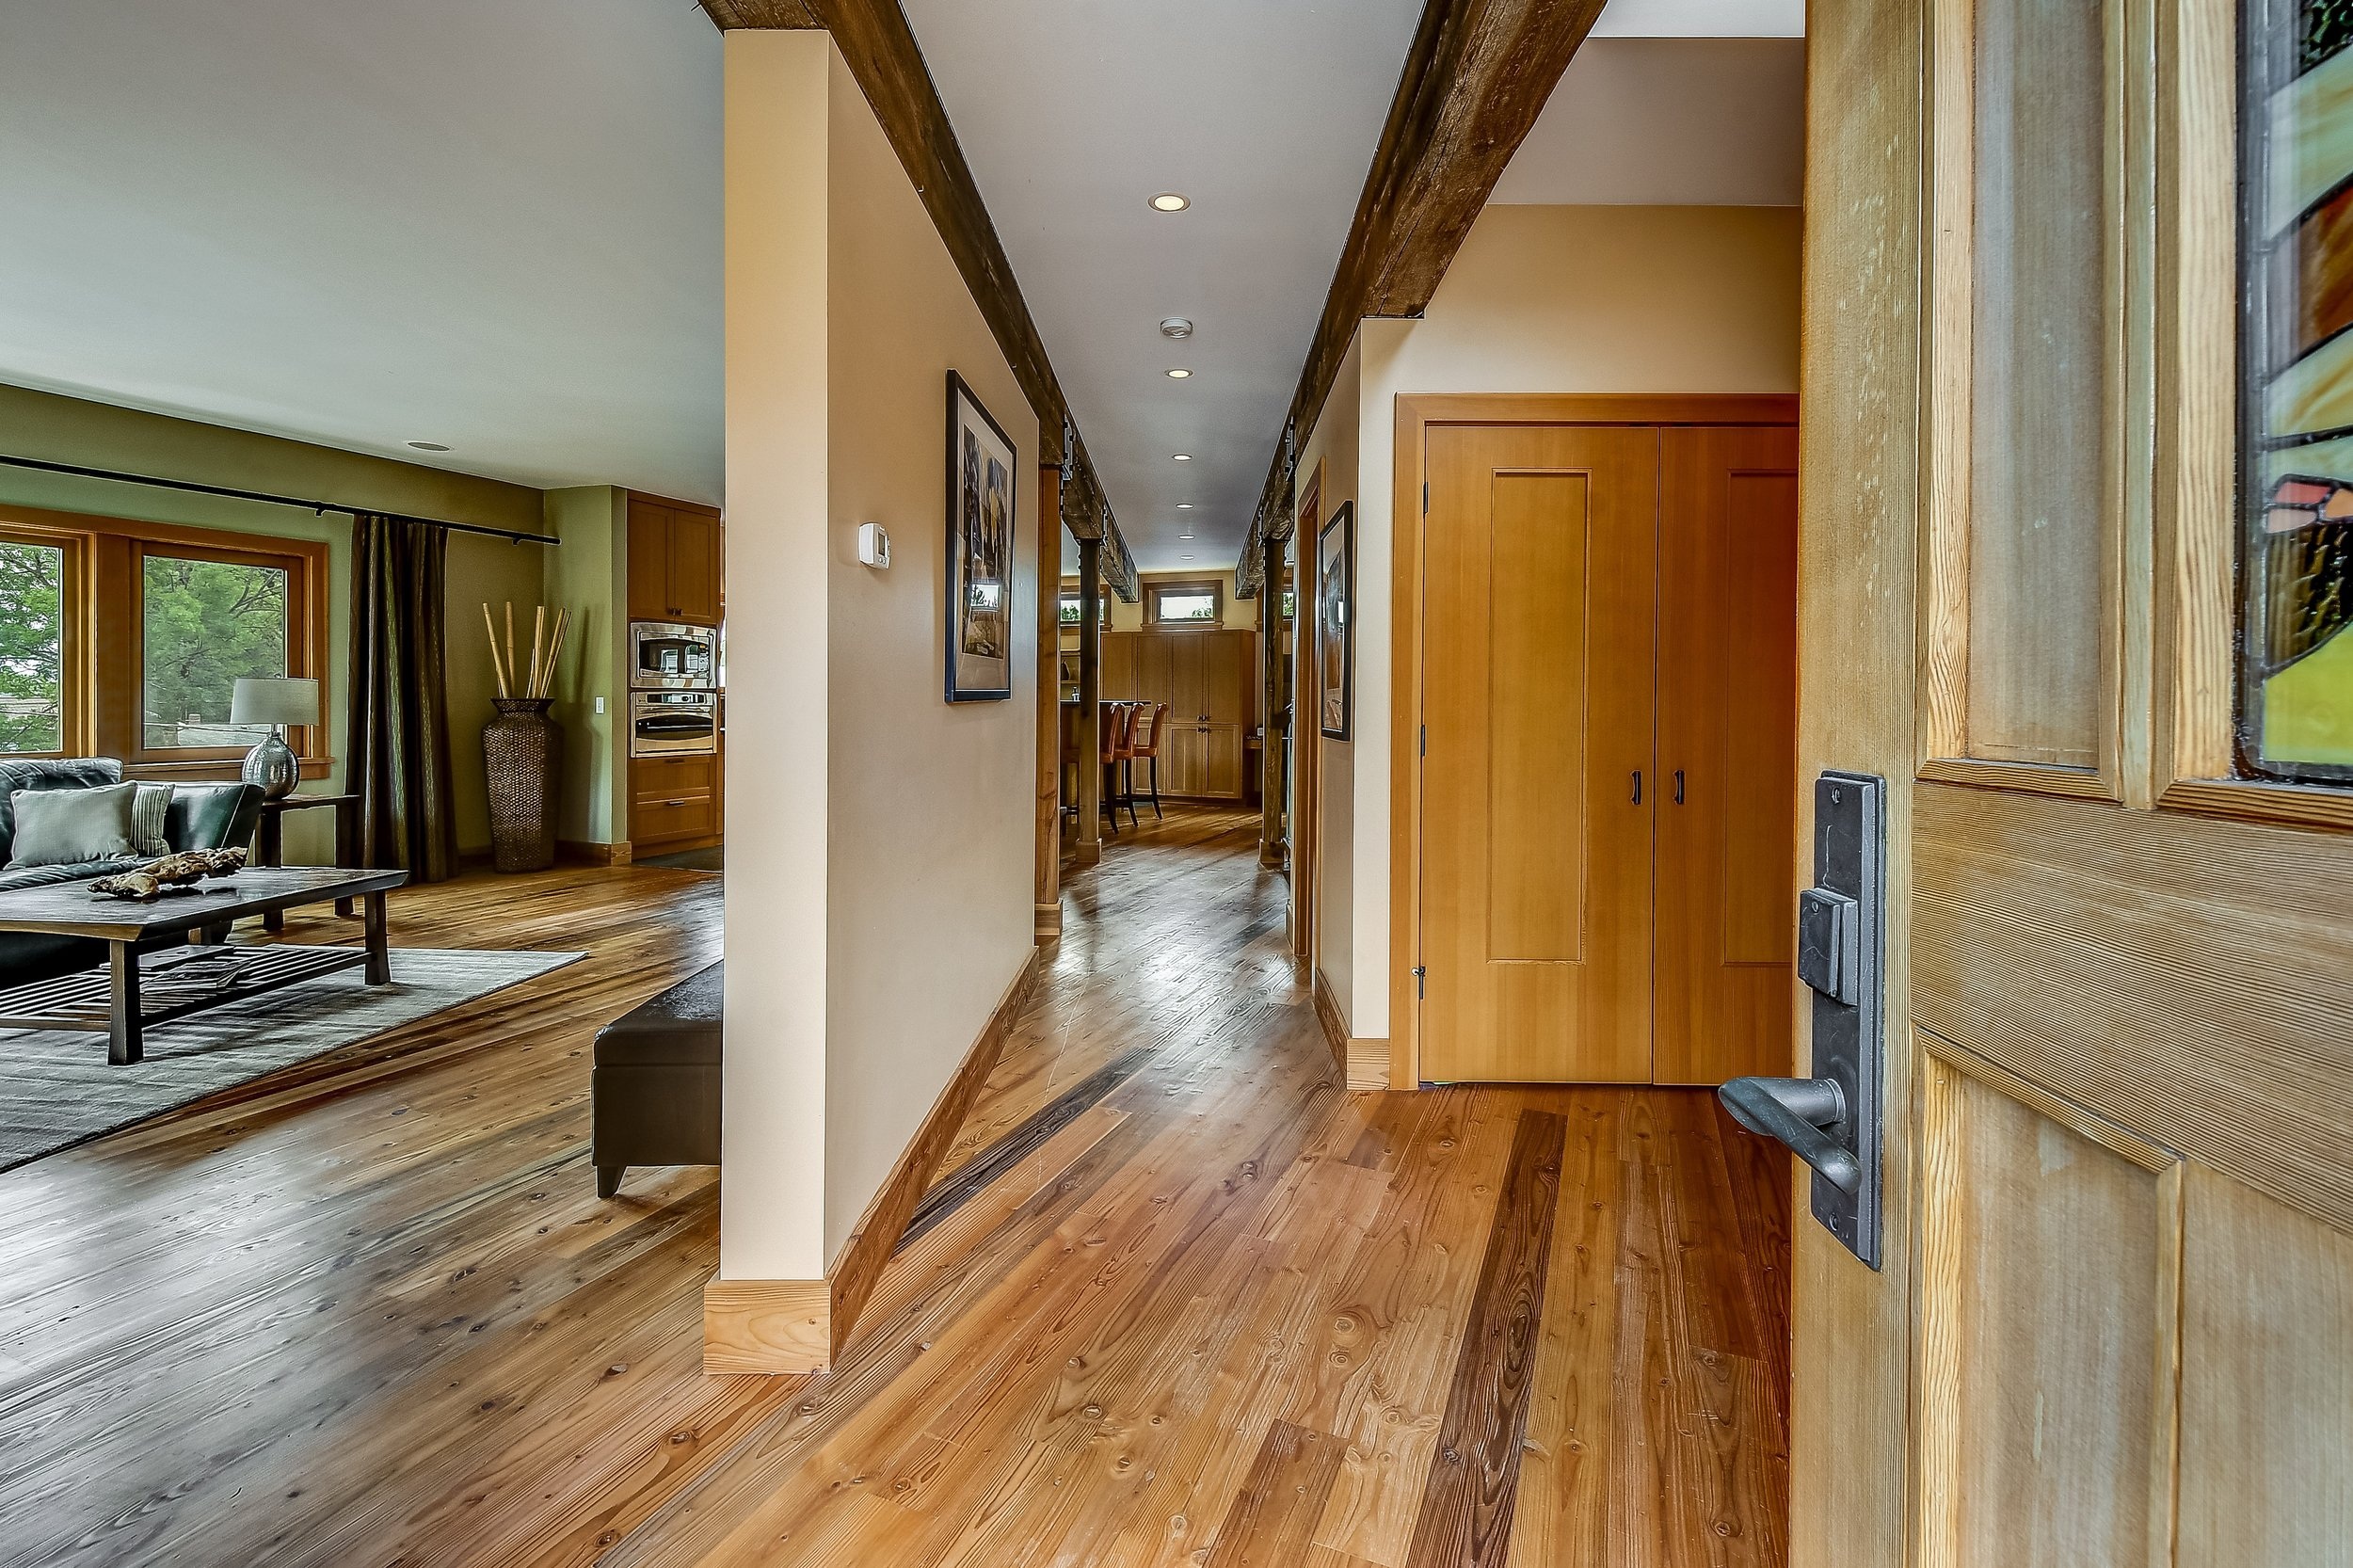 The custom stained glass door and striking reclaimed Tresslewood floors and beams offer a warm welcome.